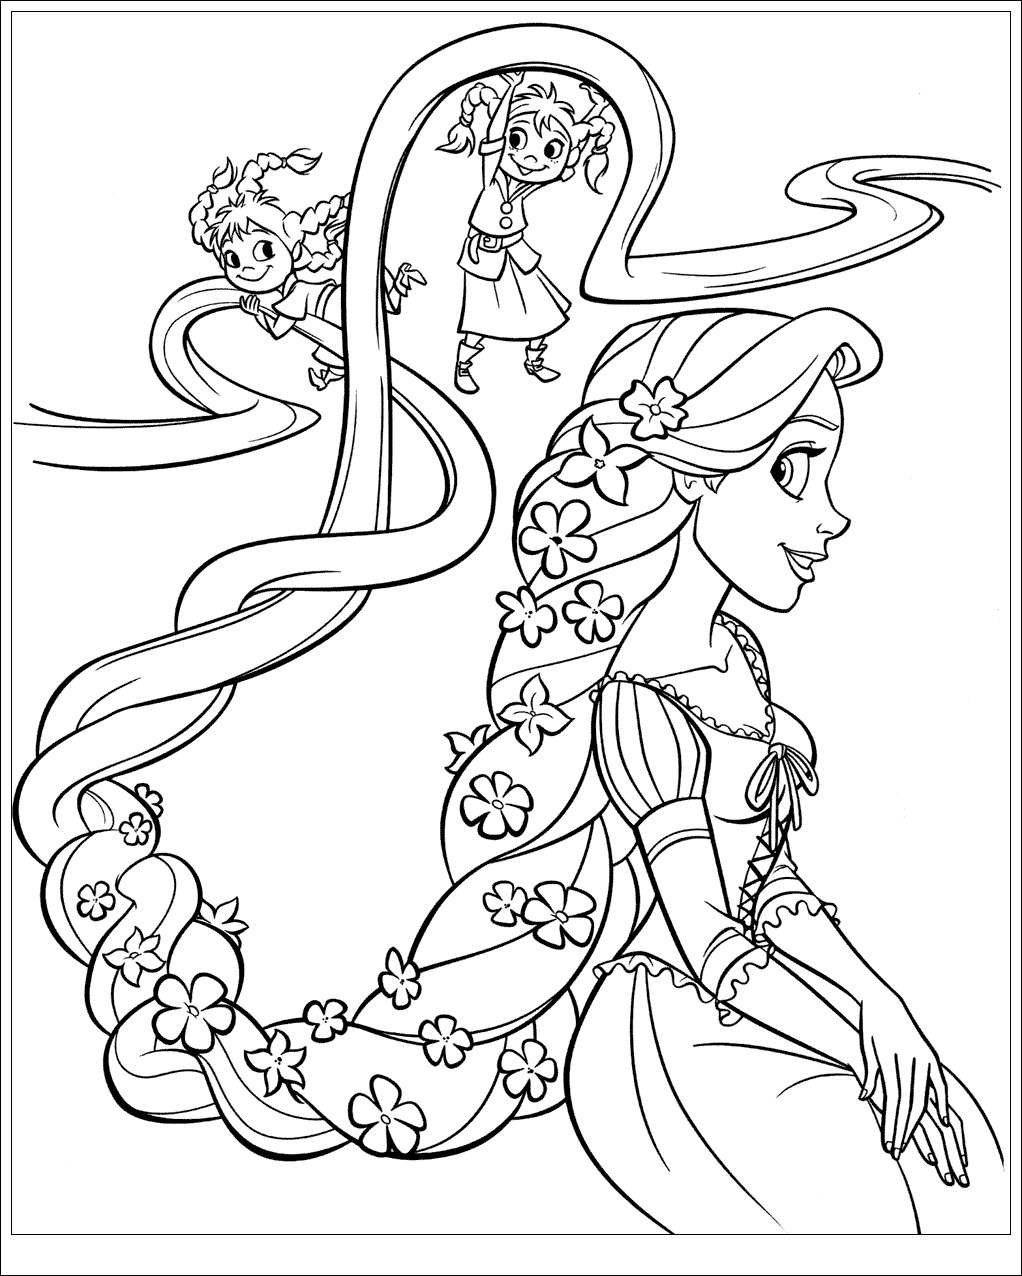 Drawn braid rapunzel Kids : pretty Rapunzel coloriage